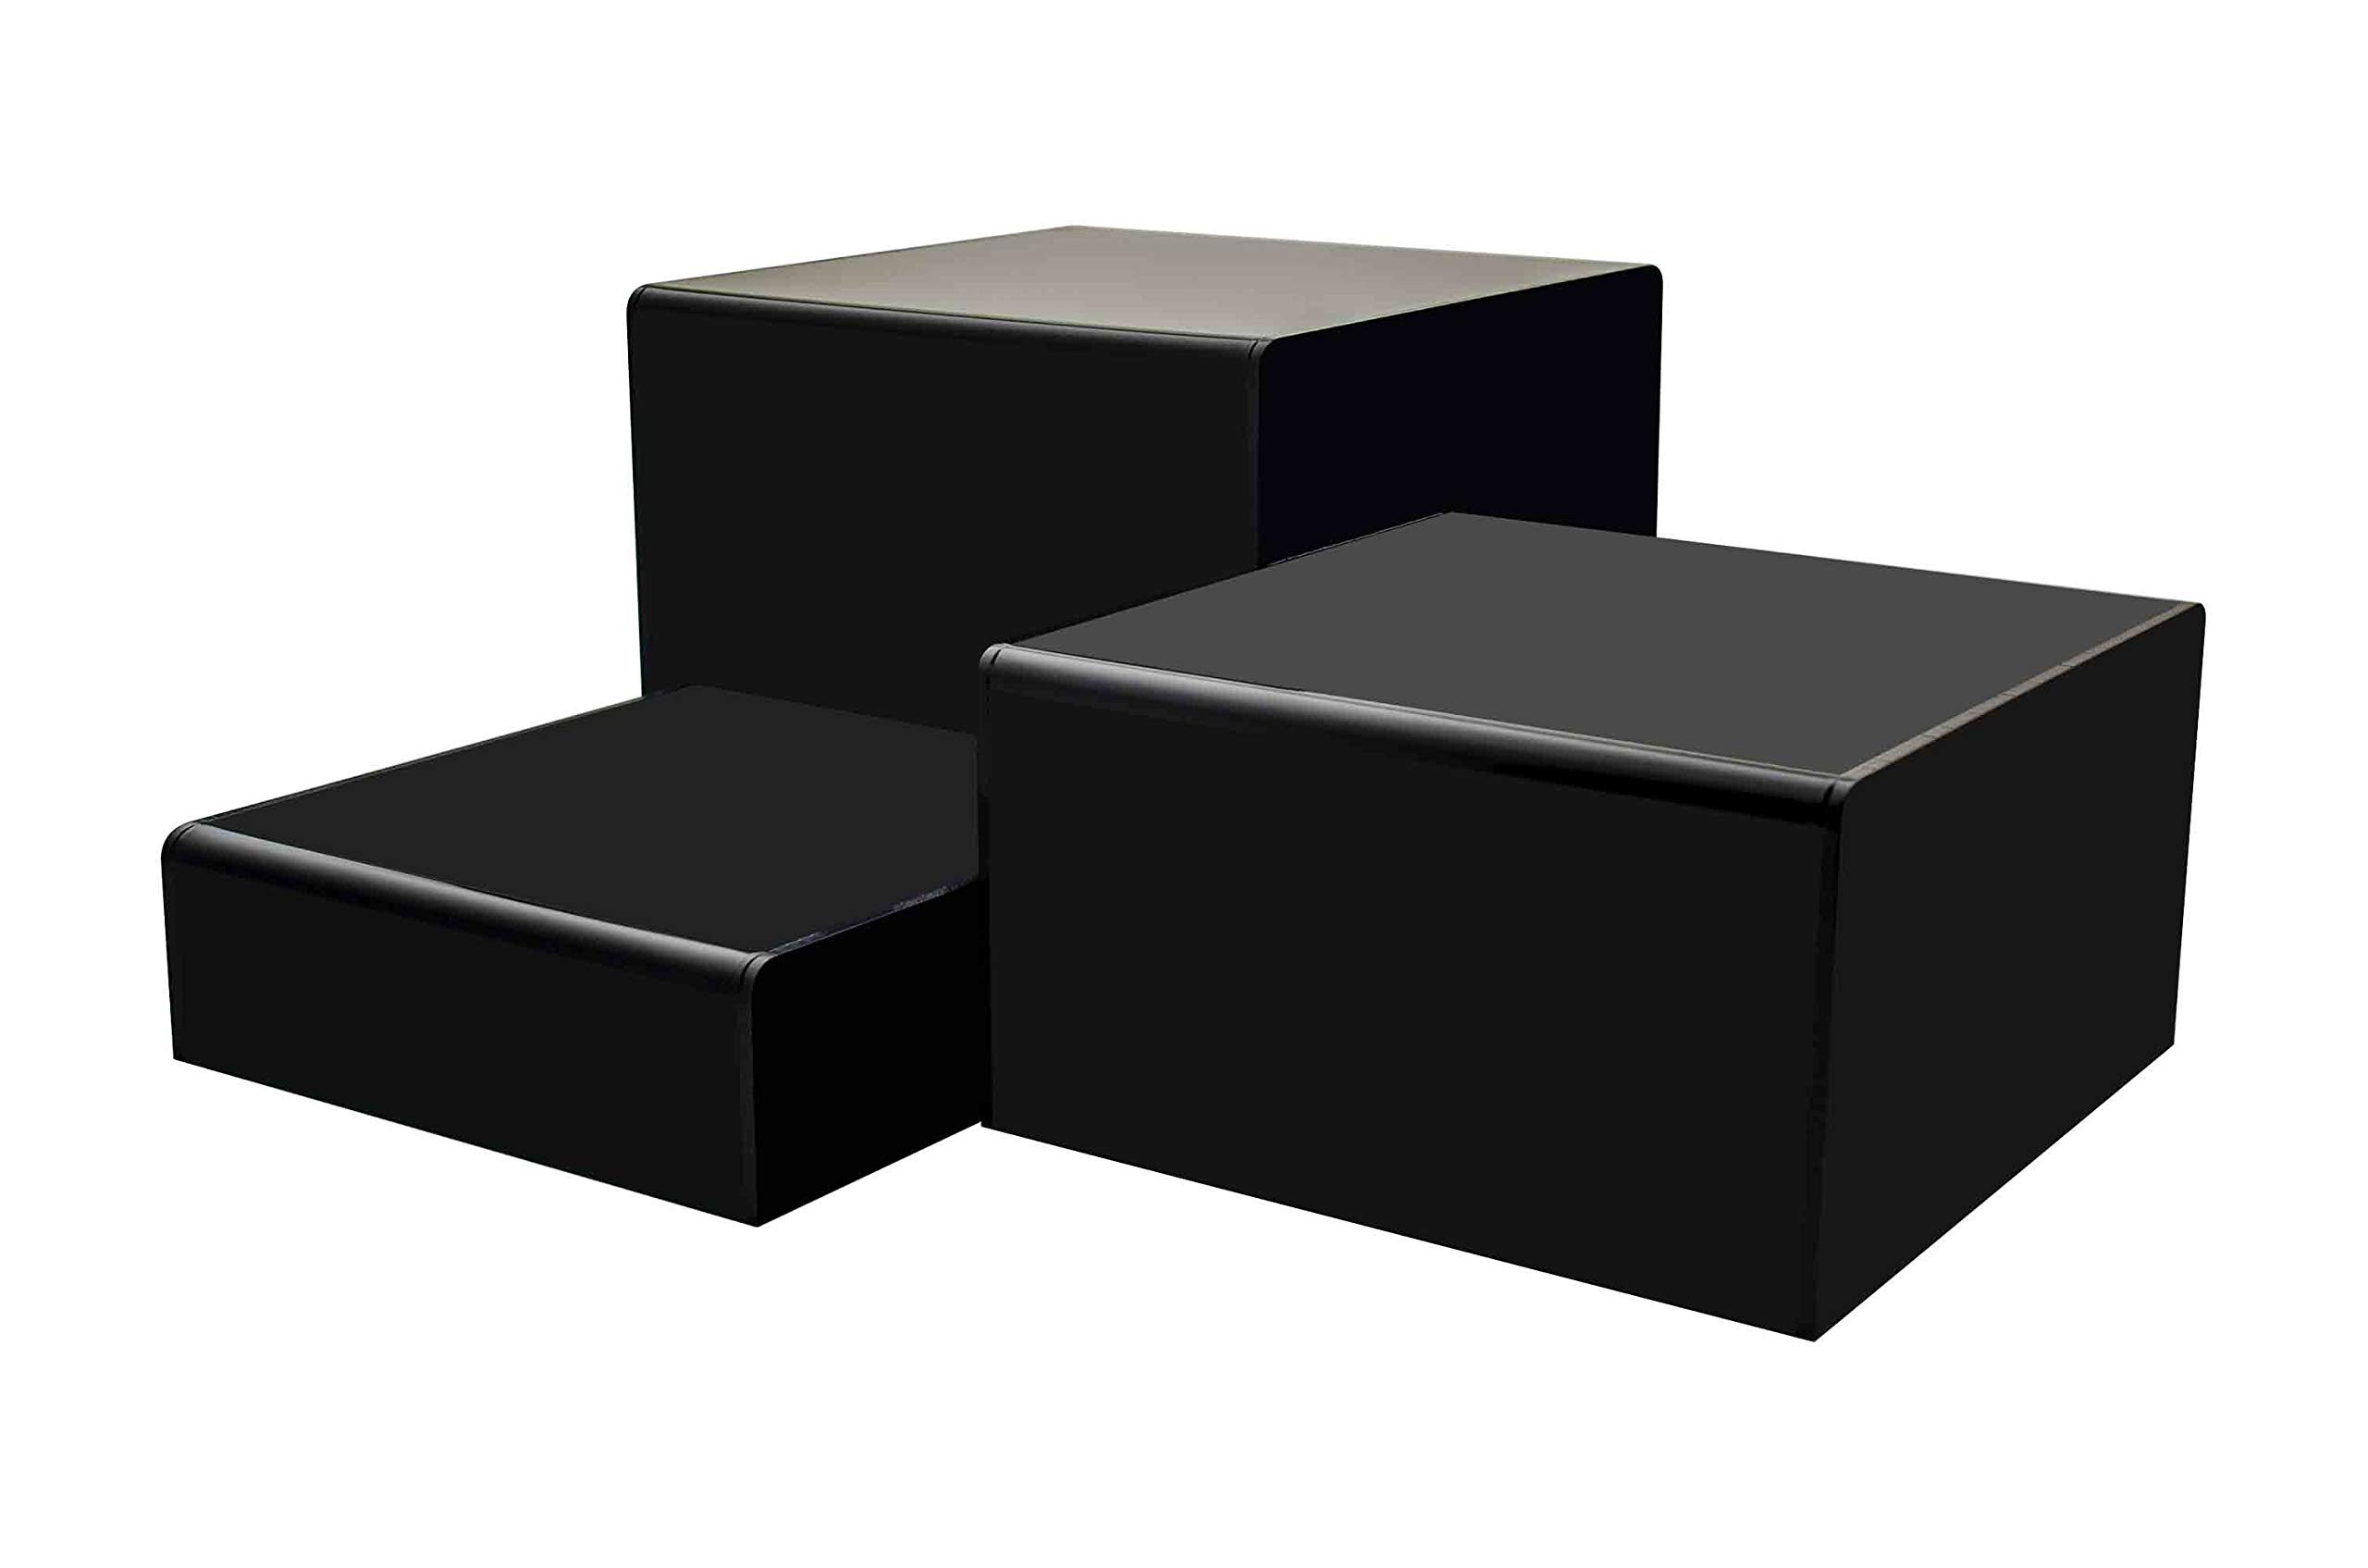 Marketing Holders Cube Display Nesting Risers Showcase Collectables Pedestald for Trinkets Figurines Trophy Dolls Hollow Bottoms Acrylic Black Pack of 3 by Marketing Holders (Image #1)